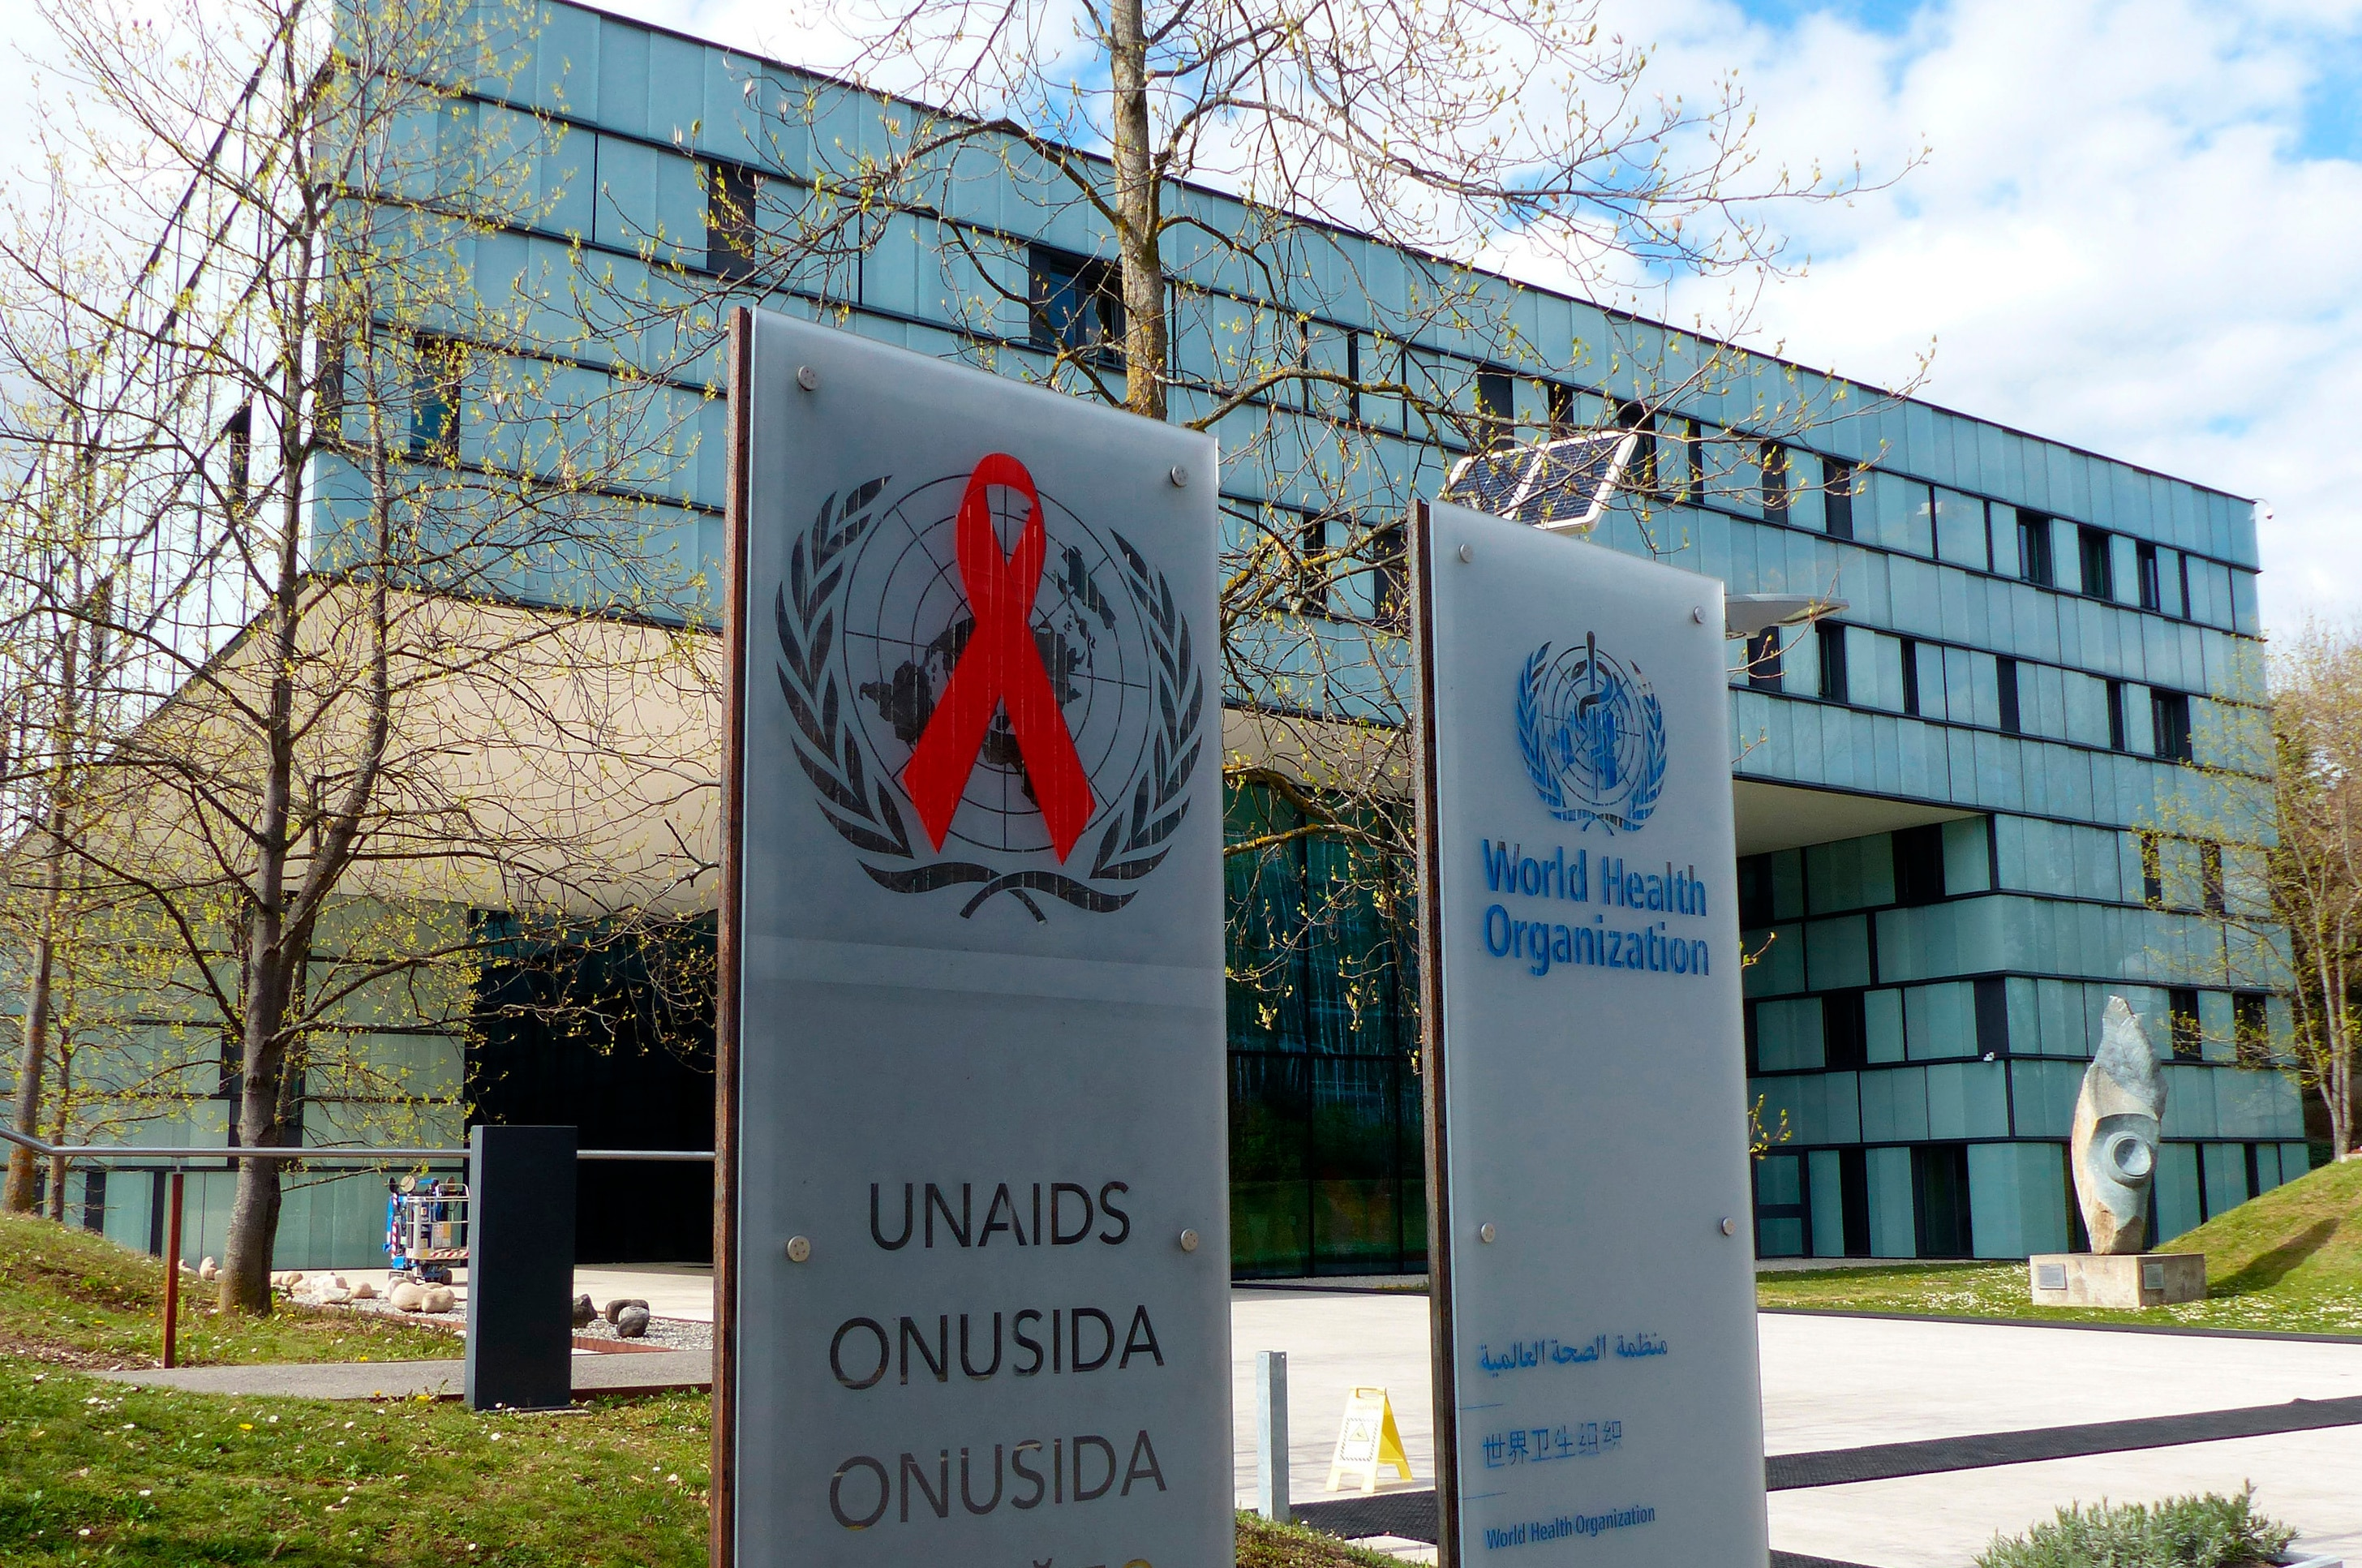 Progress in AIDS/HIV Fight Uneven, UN Says